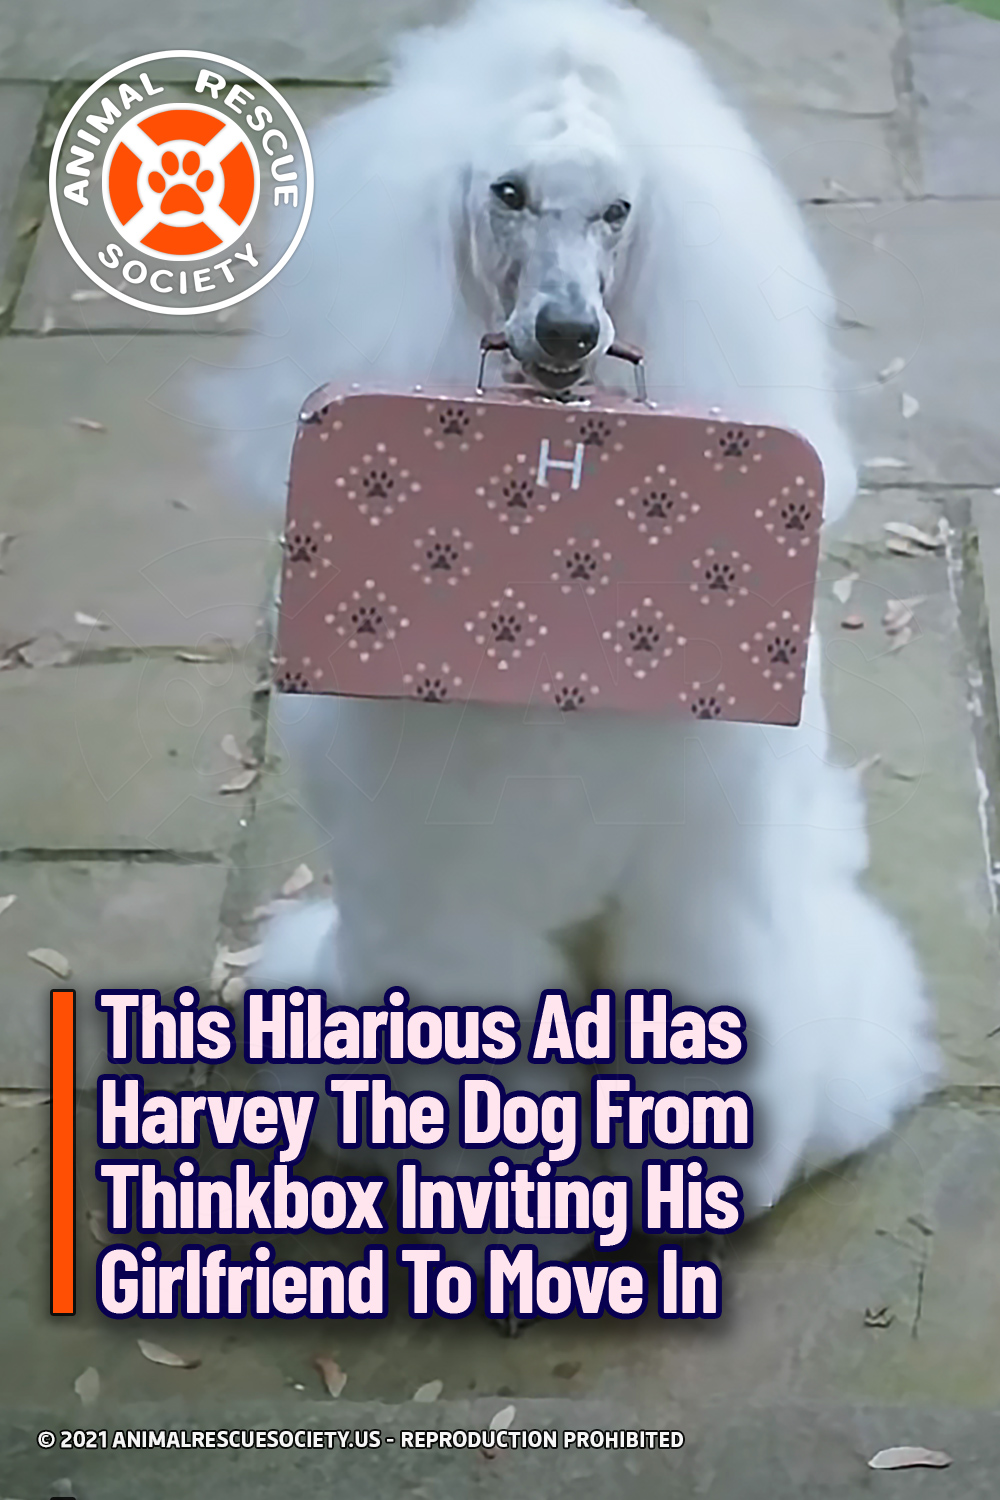 This Hilarious Ad Has Harvey The Dog From Thinkbox Inviting His Girlfriend To Move In